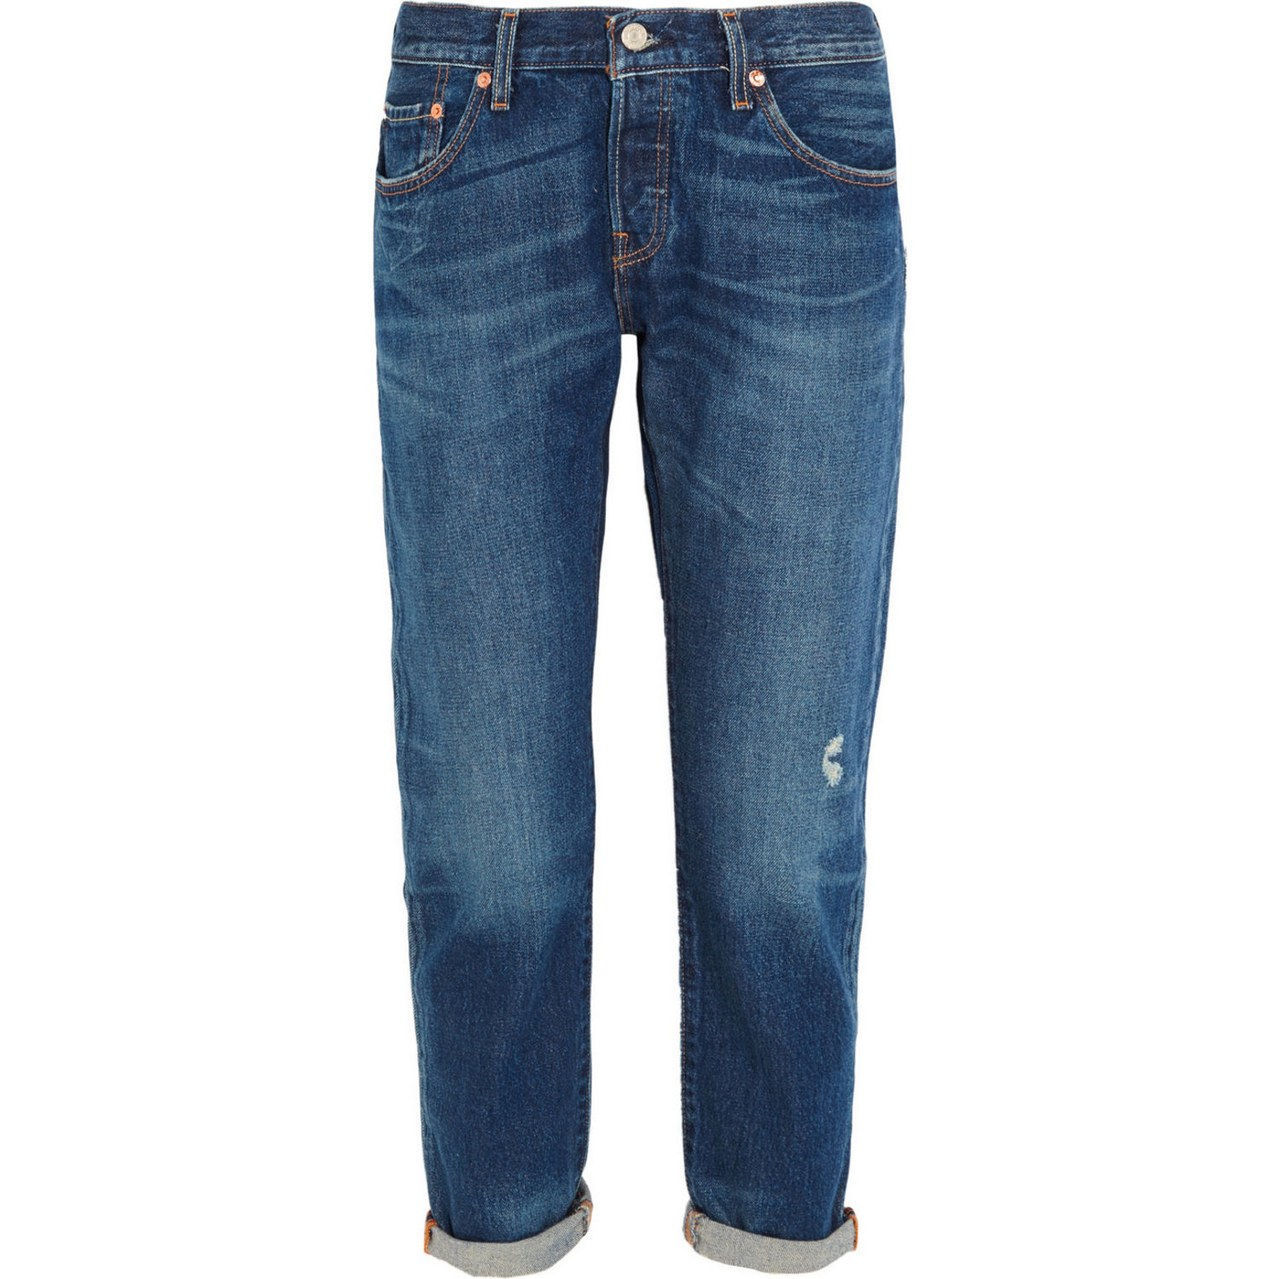 सर्दी weather jeans levis 501 ct